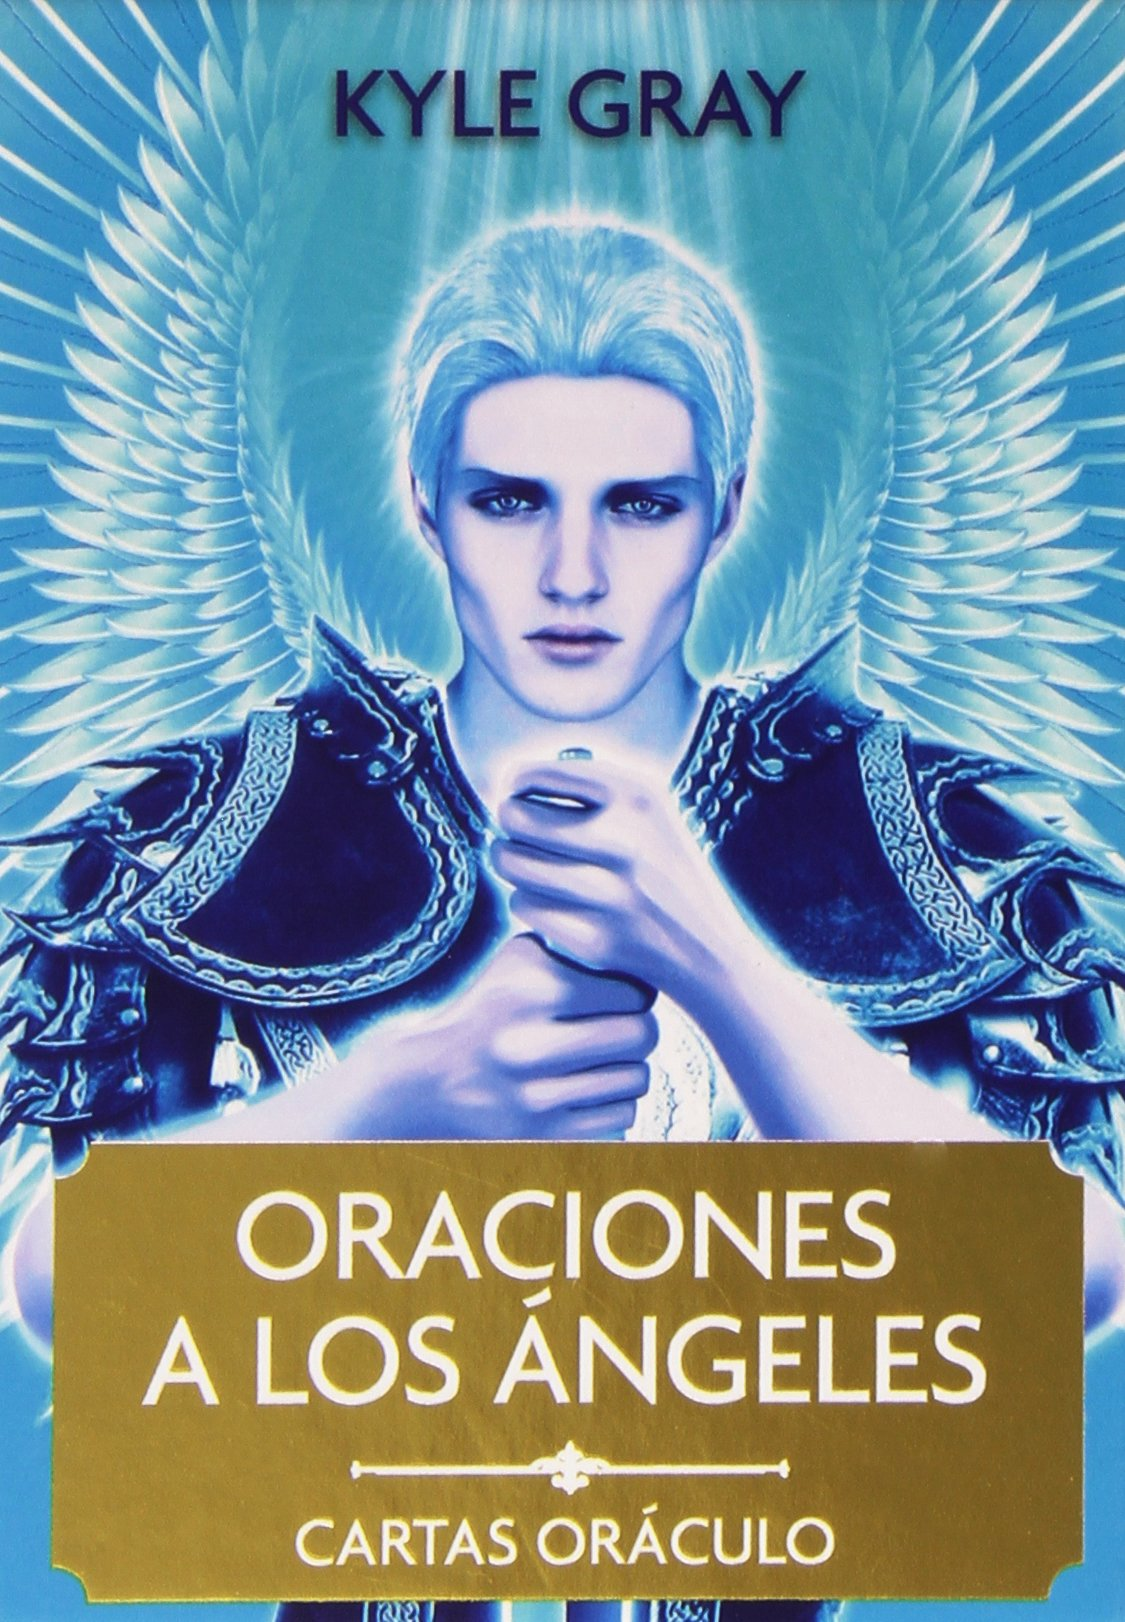 Oraciones a los angeles cartas oraculo: KYLE GRAY ...